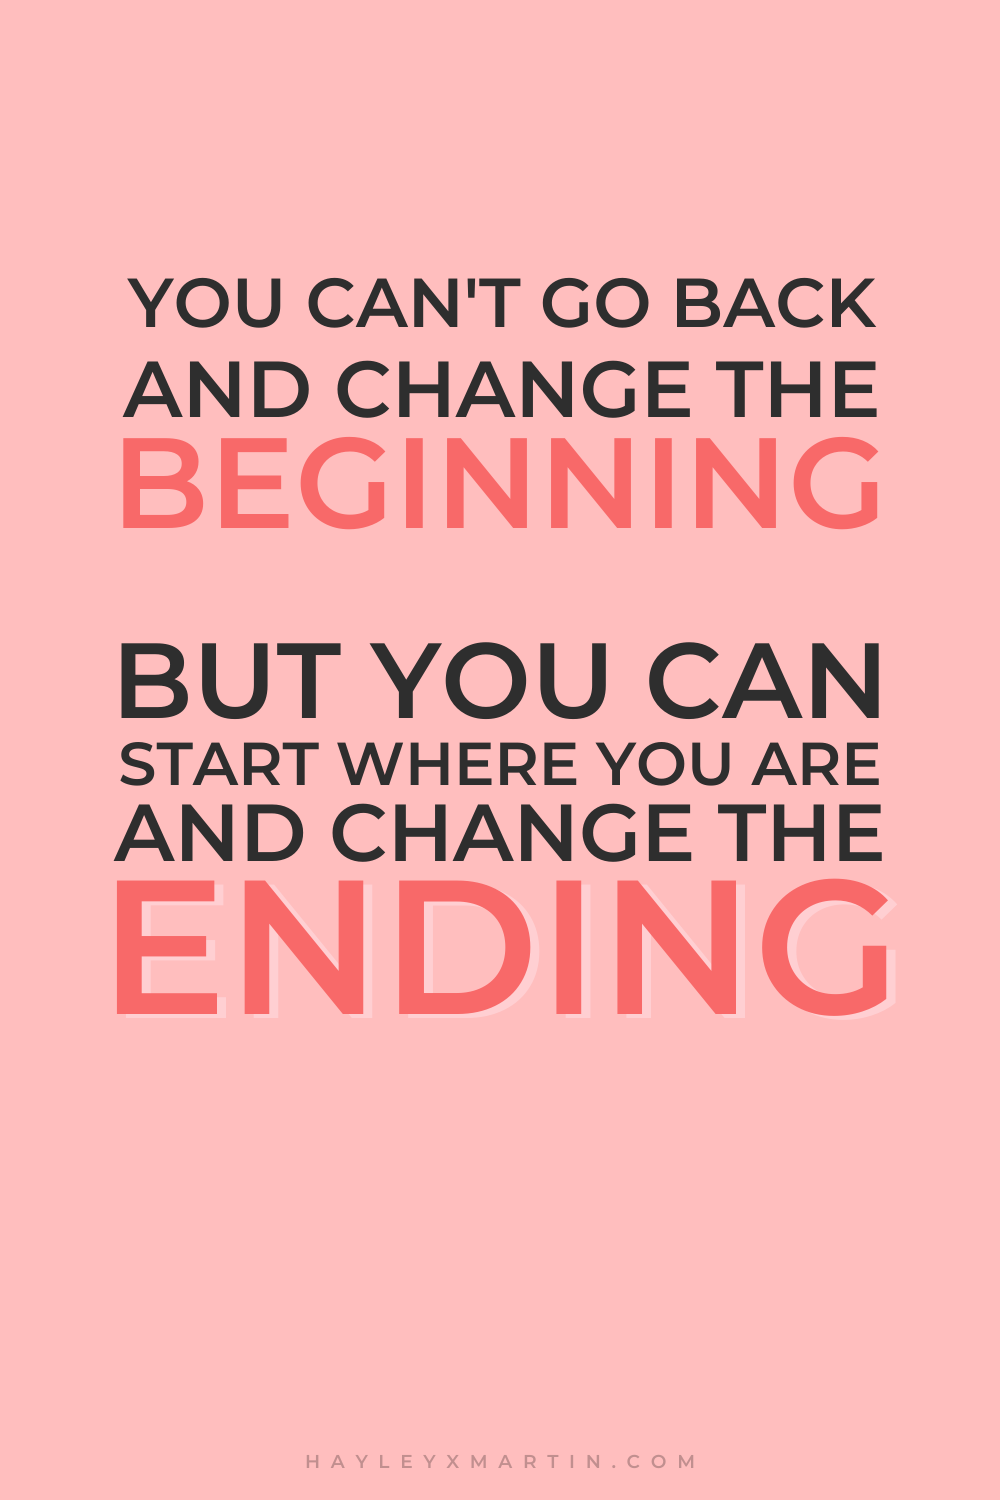 START WHERE YOU ARE AND CHANGE THE ENDING | HAYLEYXMARTIN